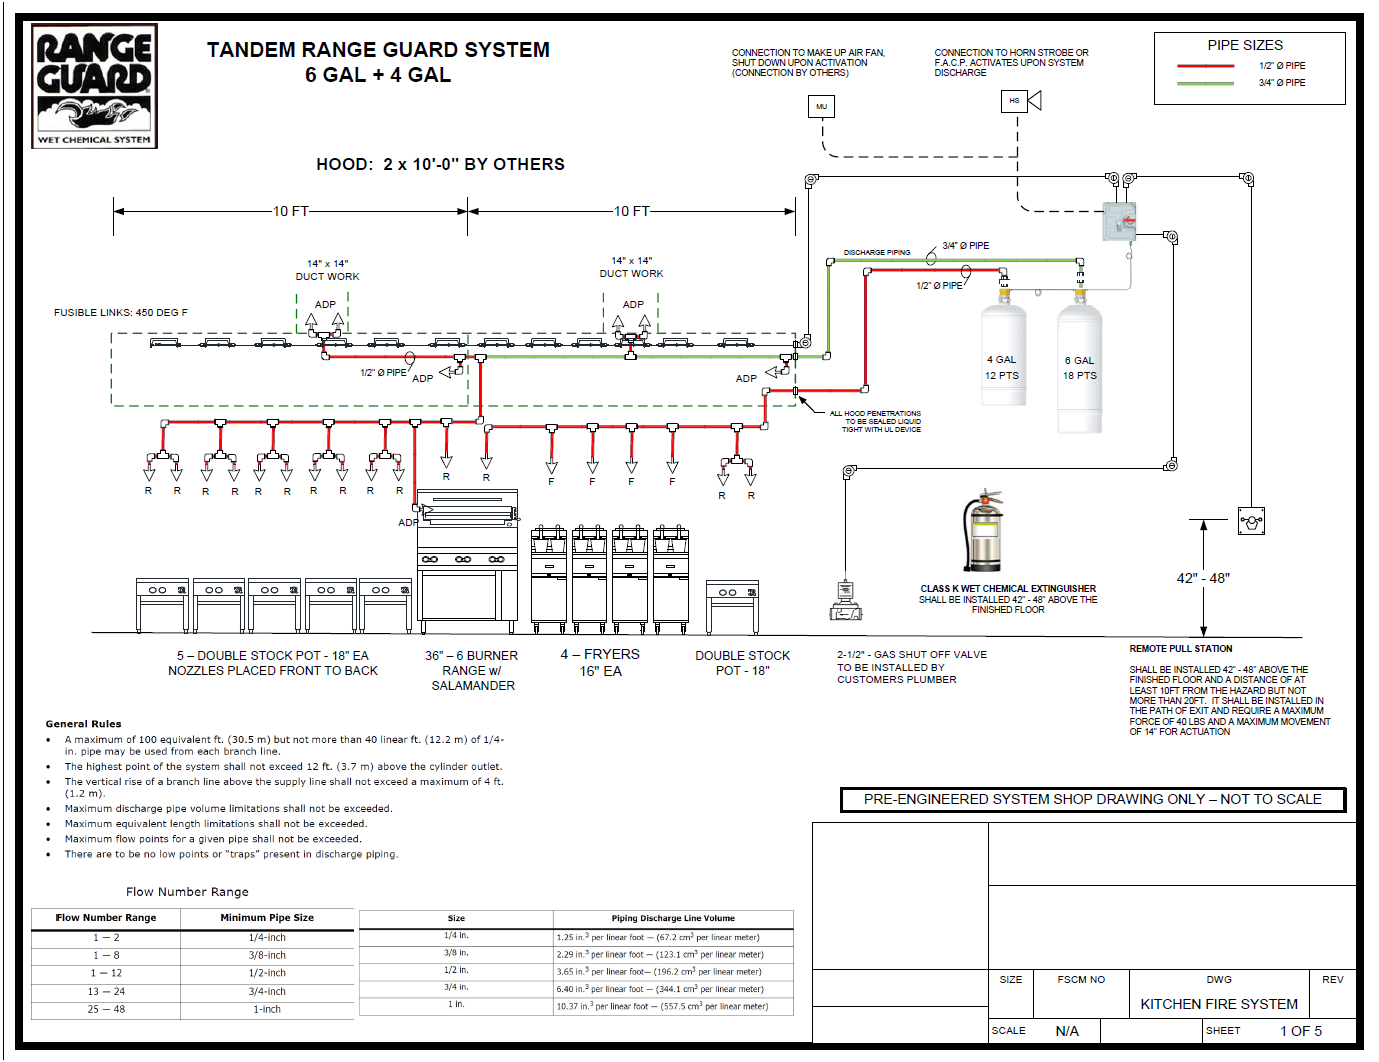 Hvac Details Dwg Detail For Autocad furthermore 1176  mercial Basement Parking And Services in addition Cad drawing  electrical  security  fire intrusion symbols 1 moreover 286 Fire Escape Plan Catalogue also Fire Protection Drawing Symbols. on fire alarm autocad drawings